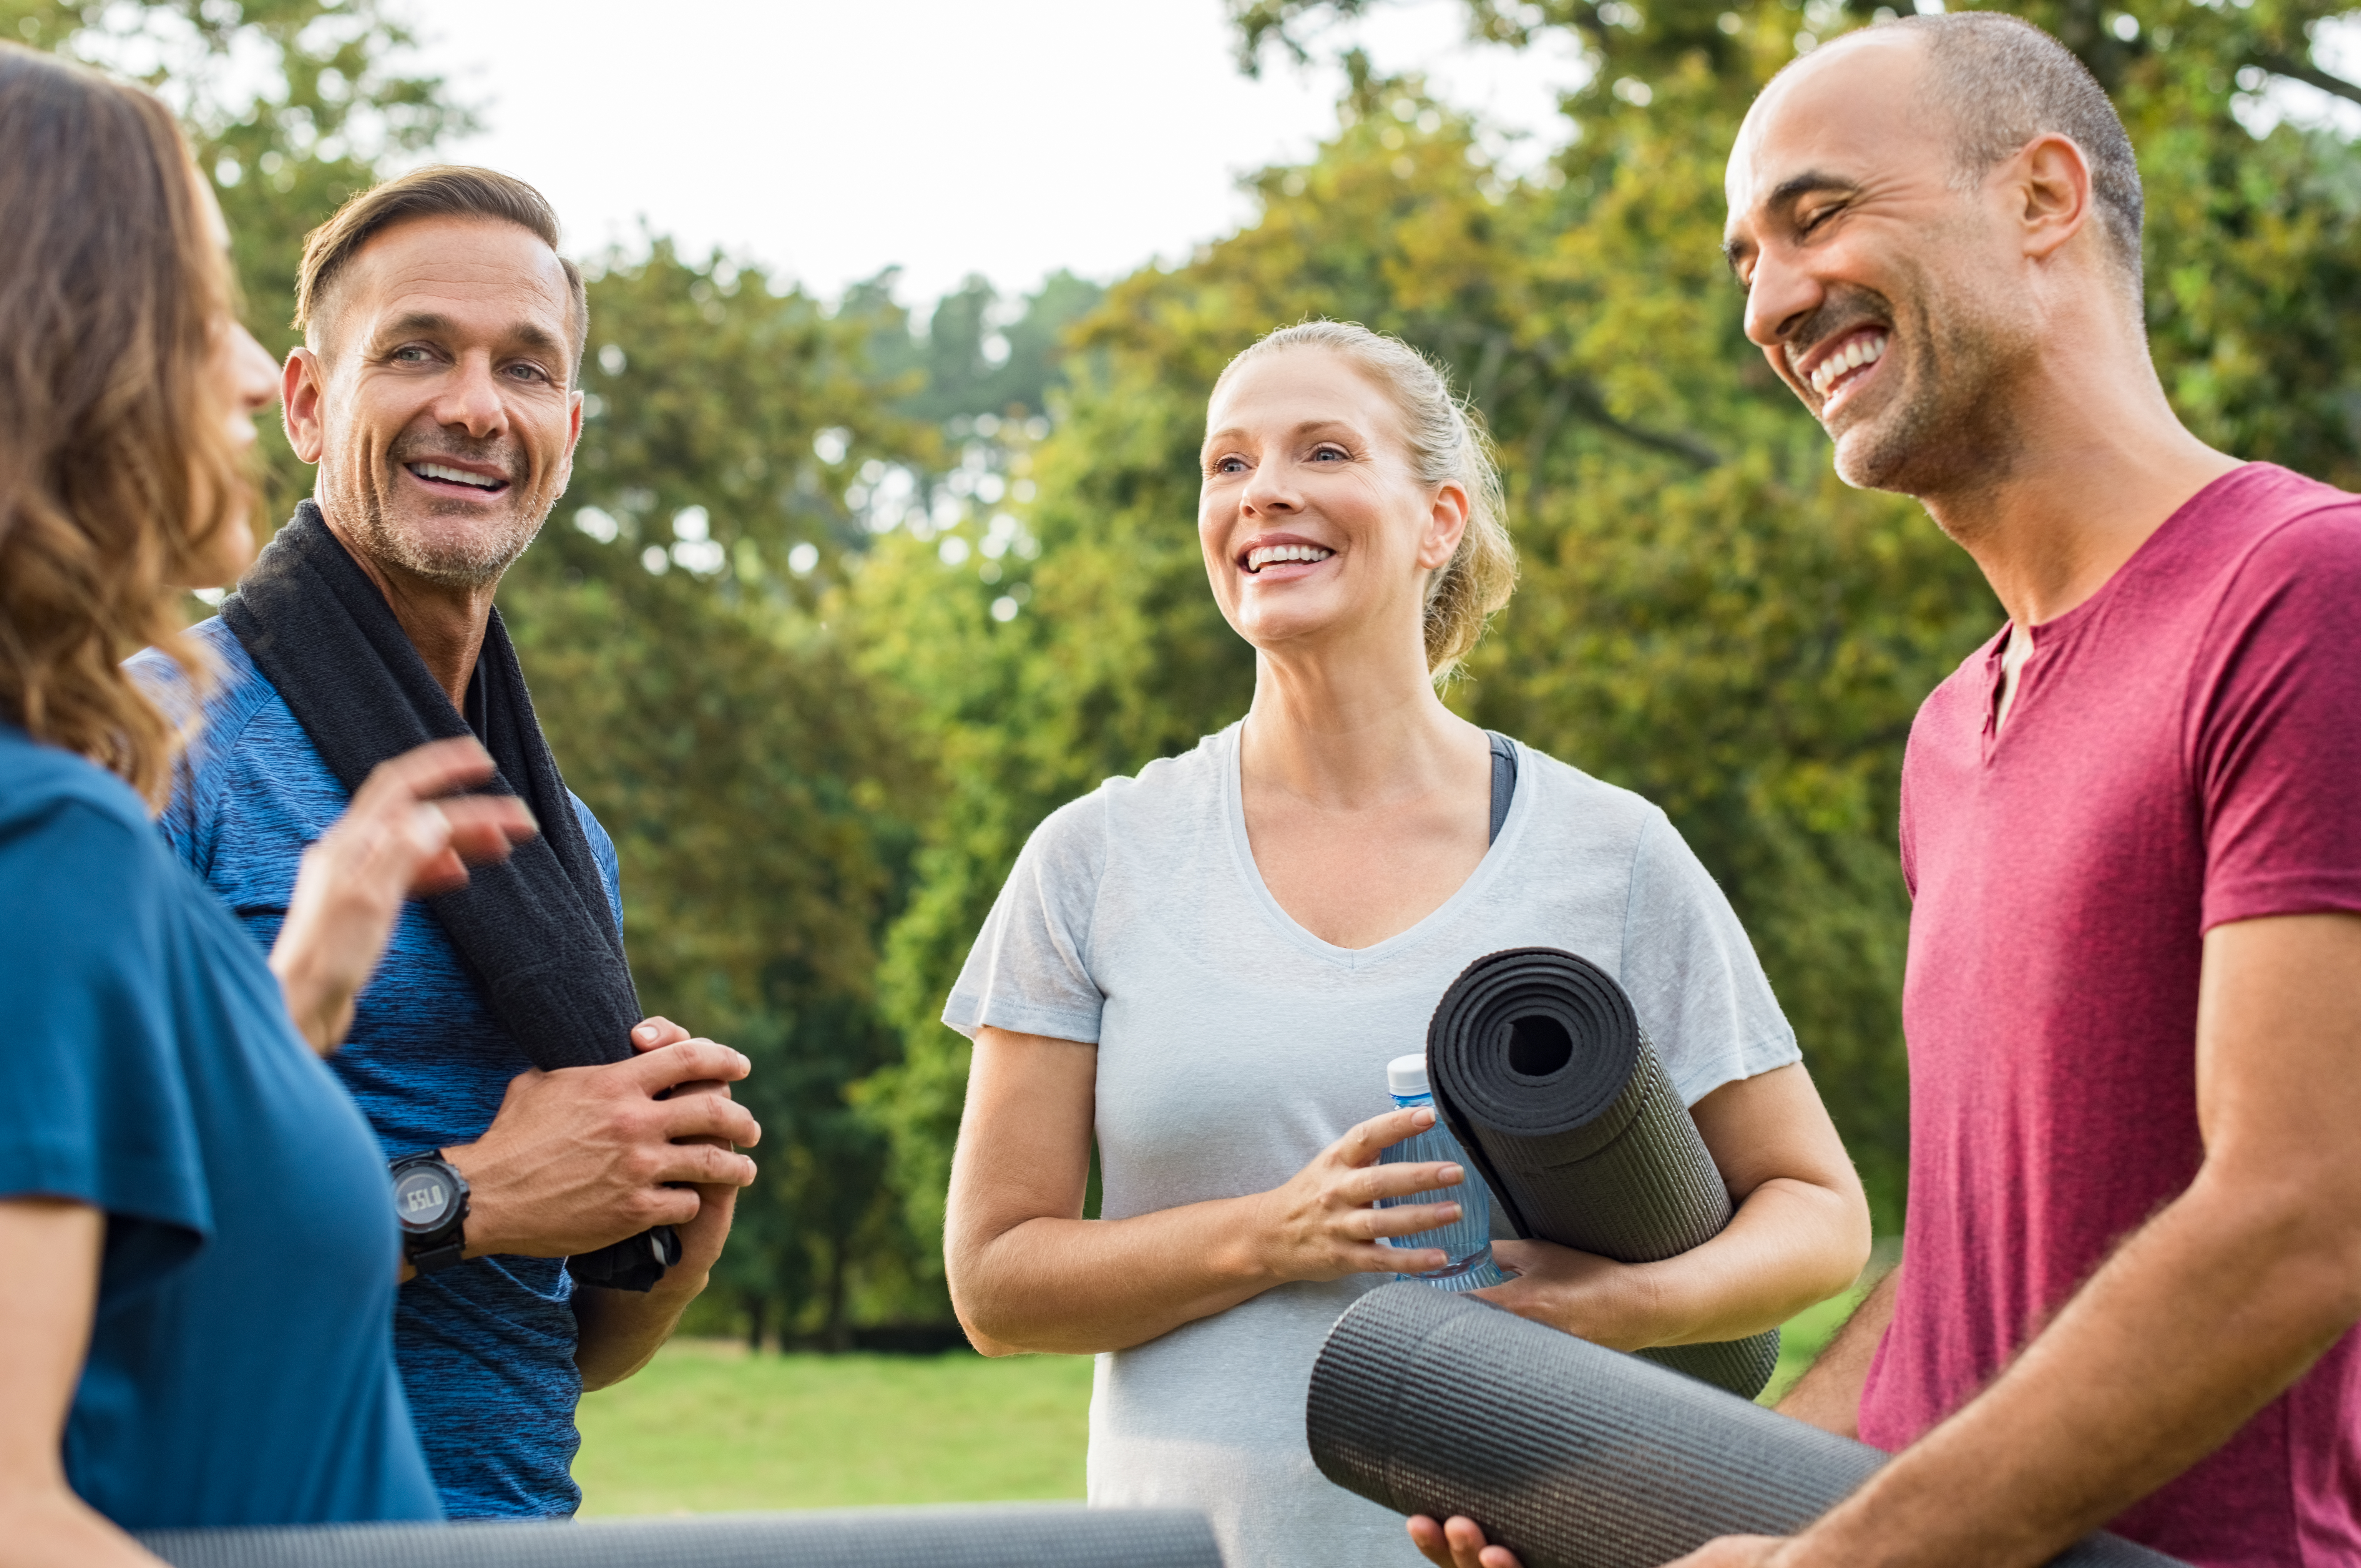 Getting into summer shape should be a year-round goal